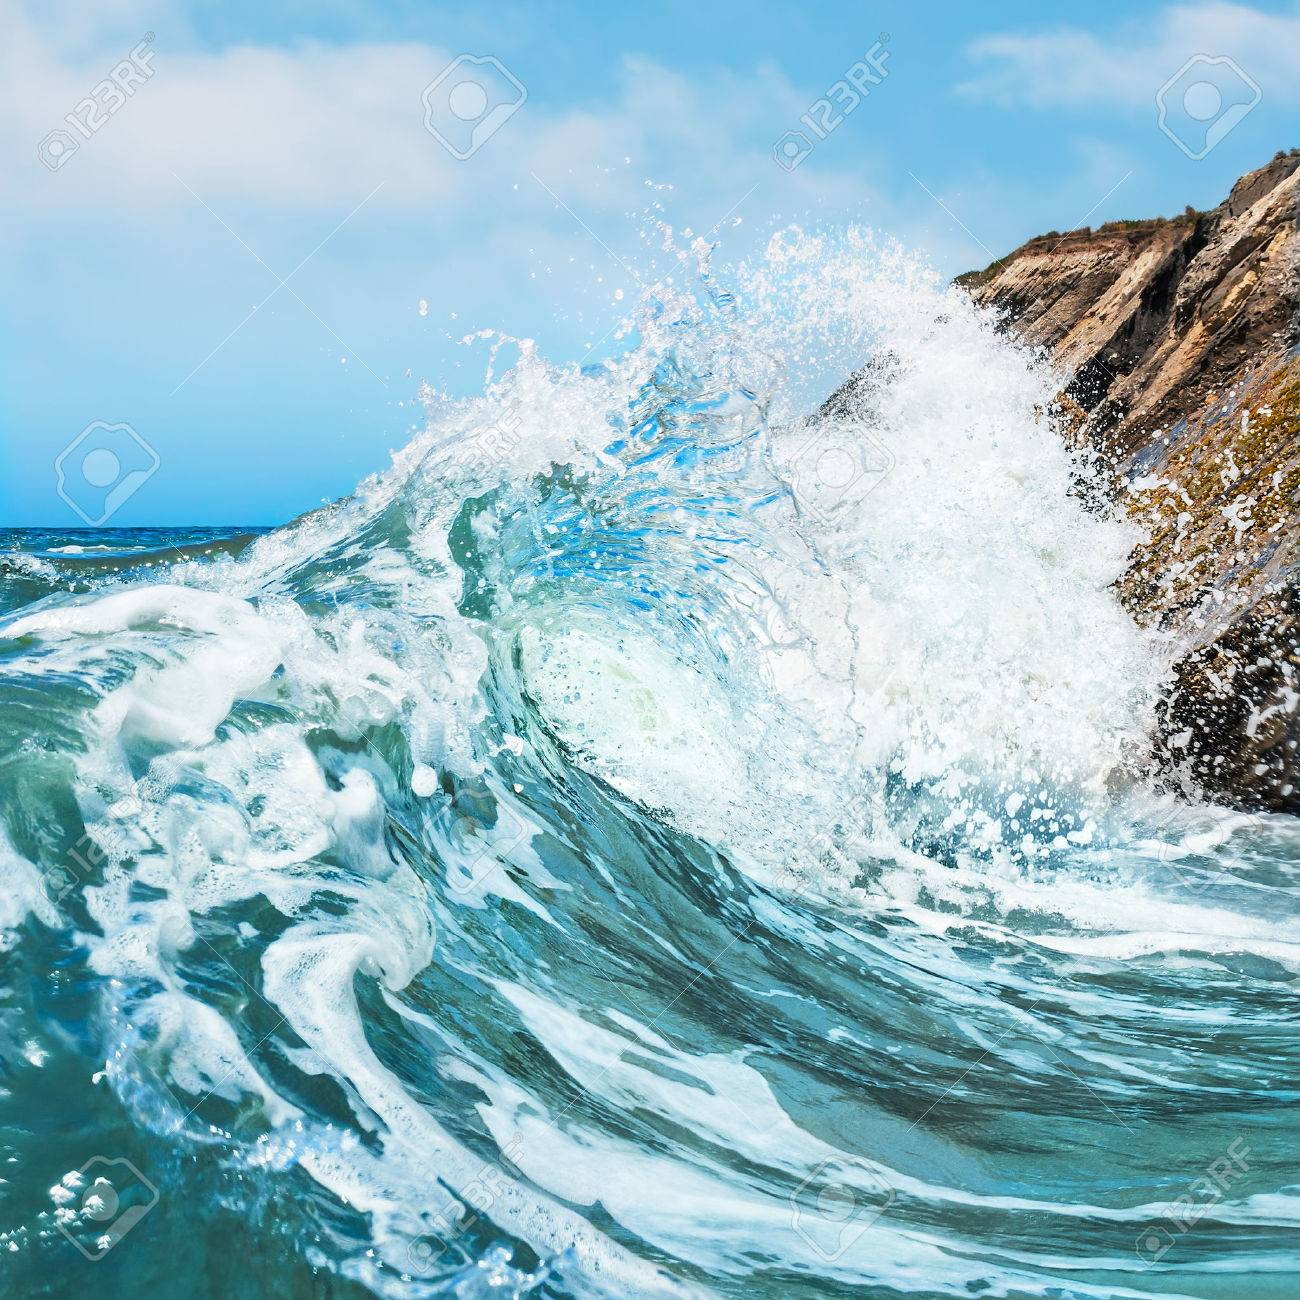 A wave crashing on the rocky shore at Gaviota State Beach in Central California - 30657255